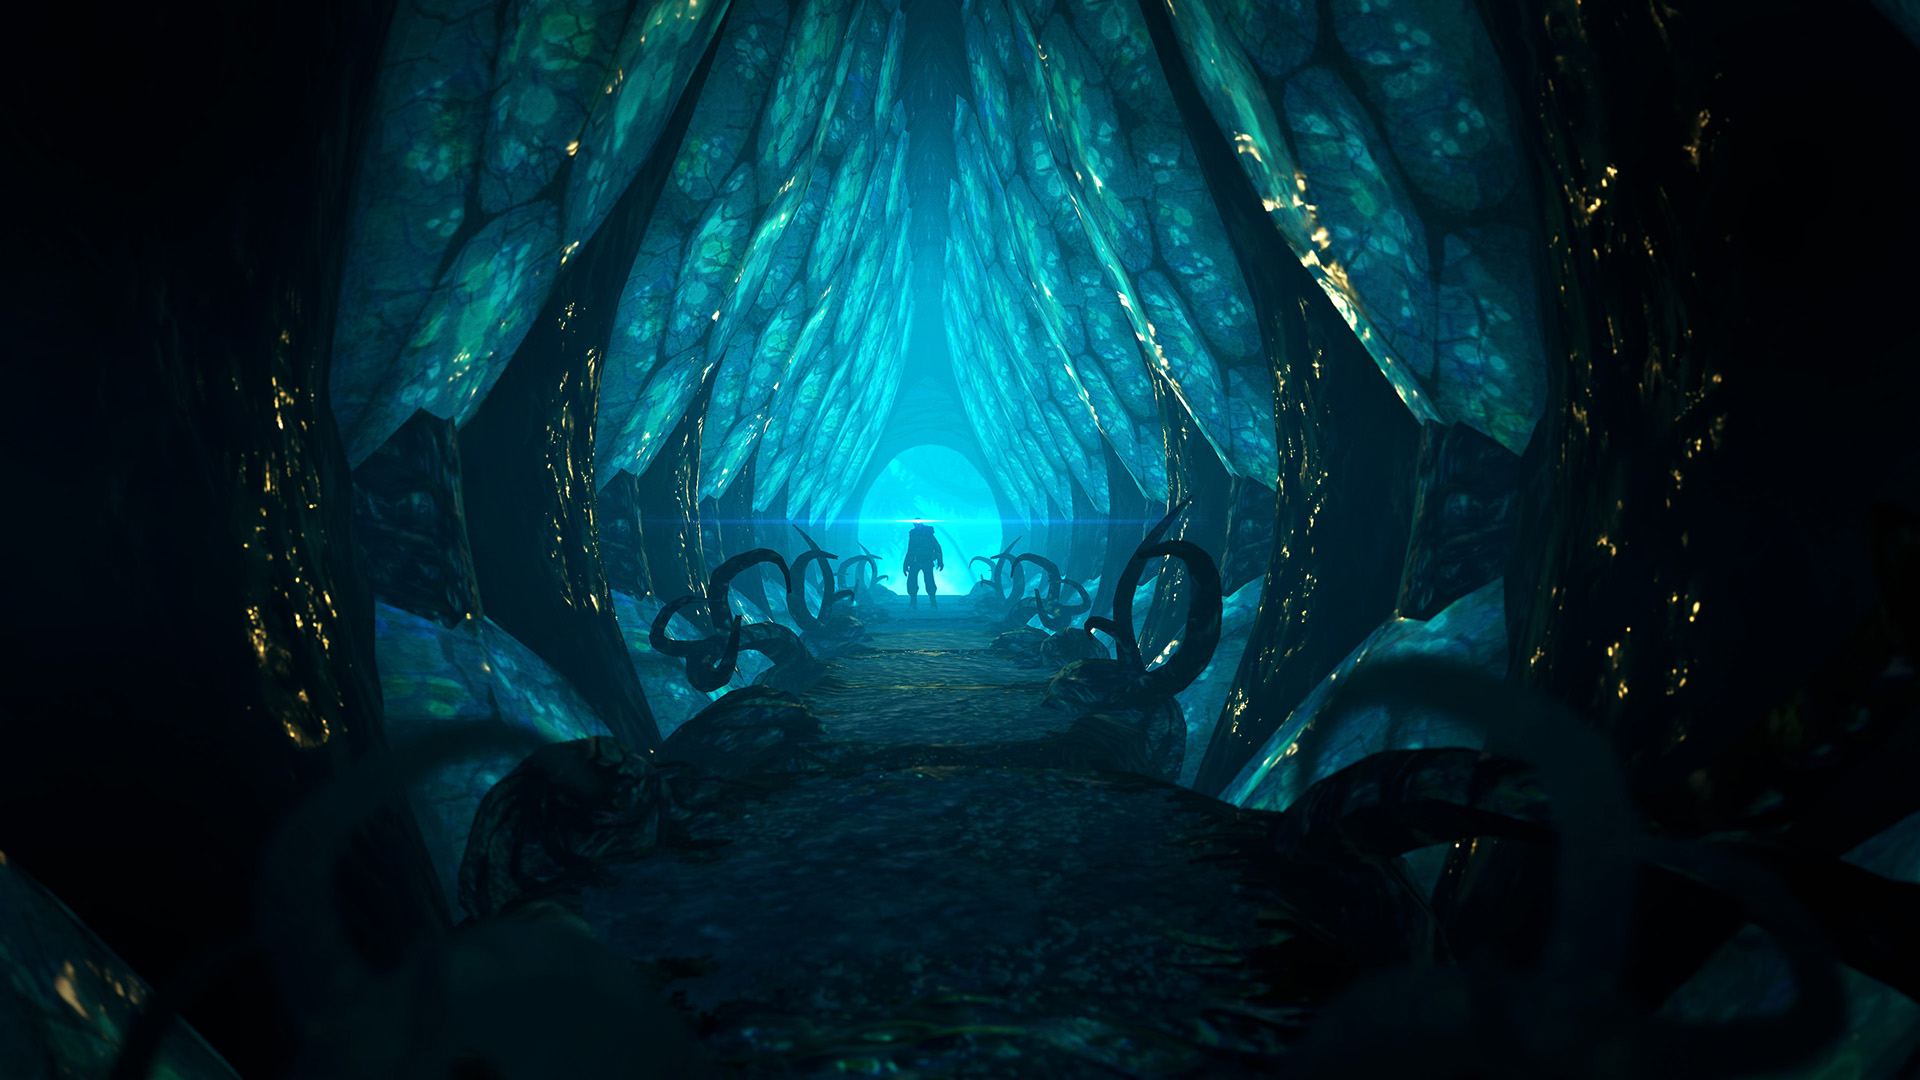 Edge of Nowhere is a confident step into virtual reality